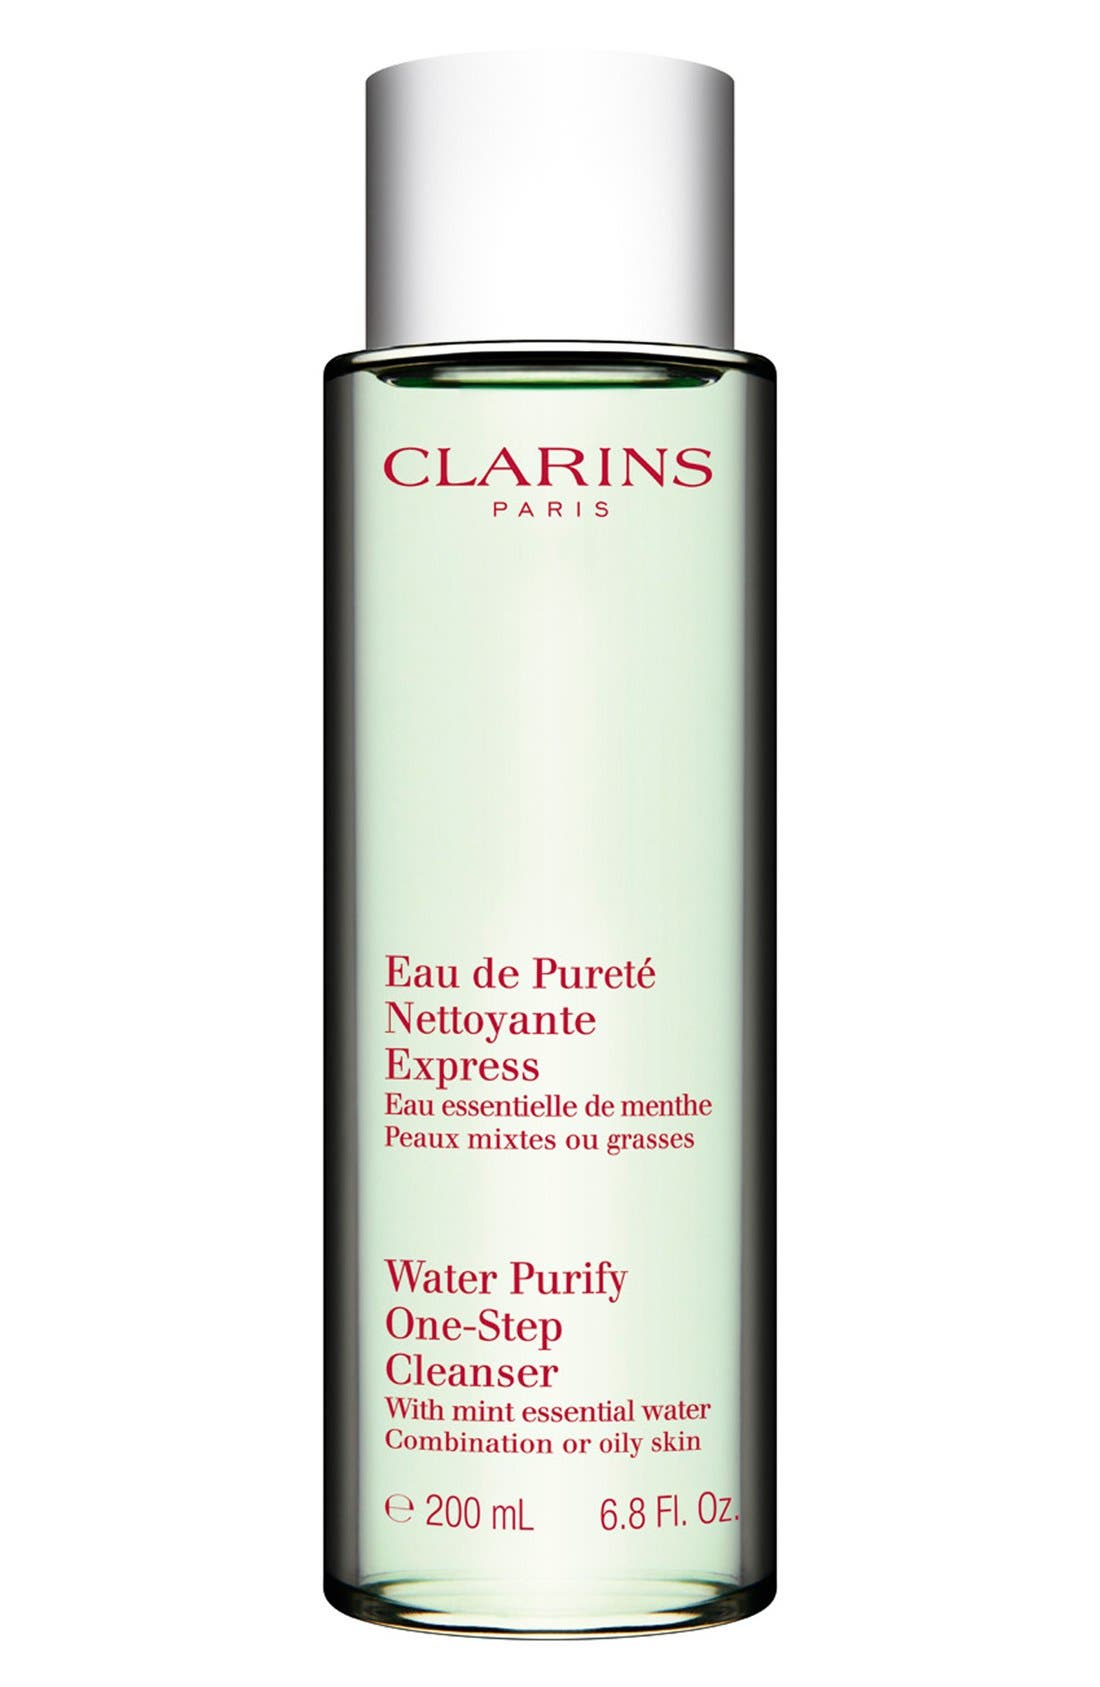 Clarins 'Water Purify' One-Step Cleanser